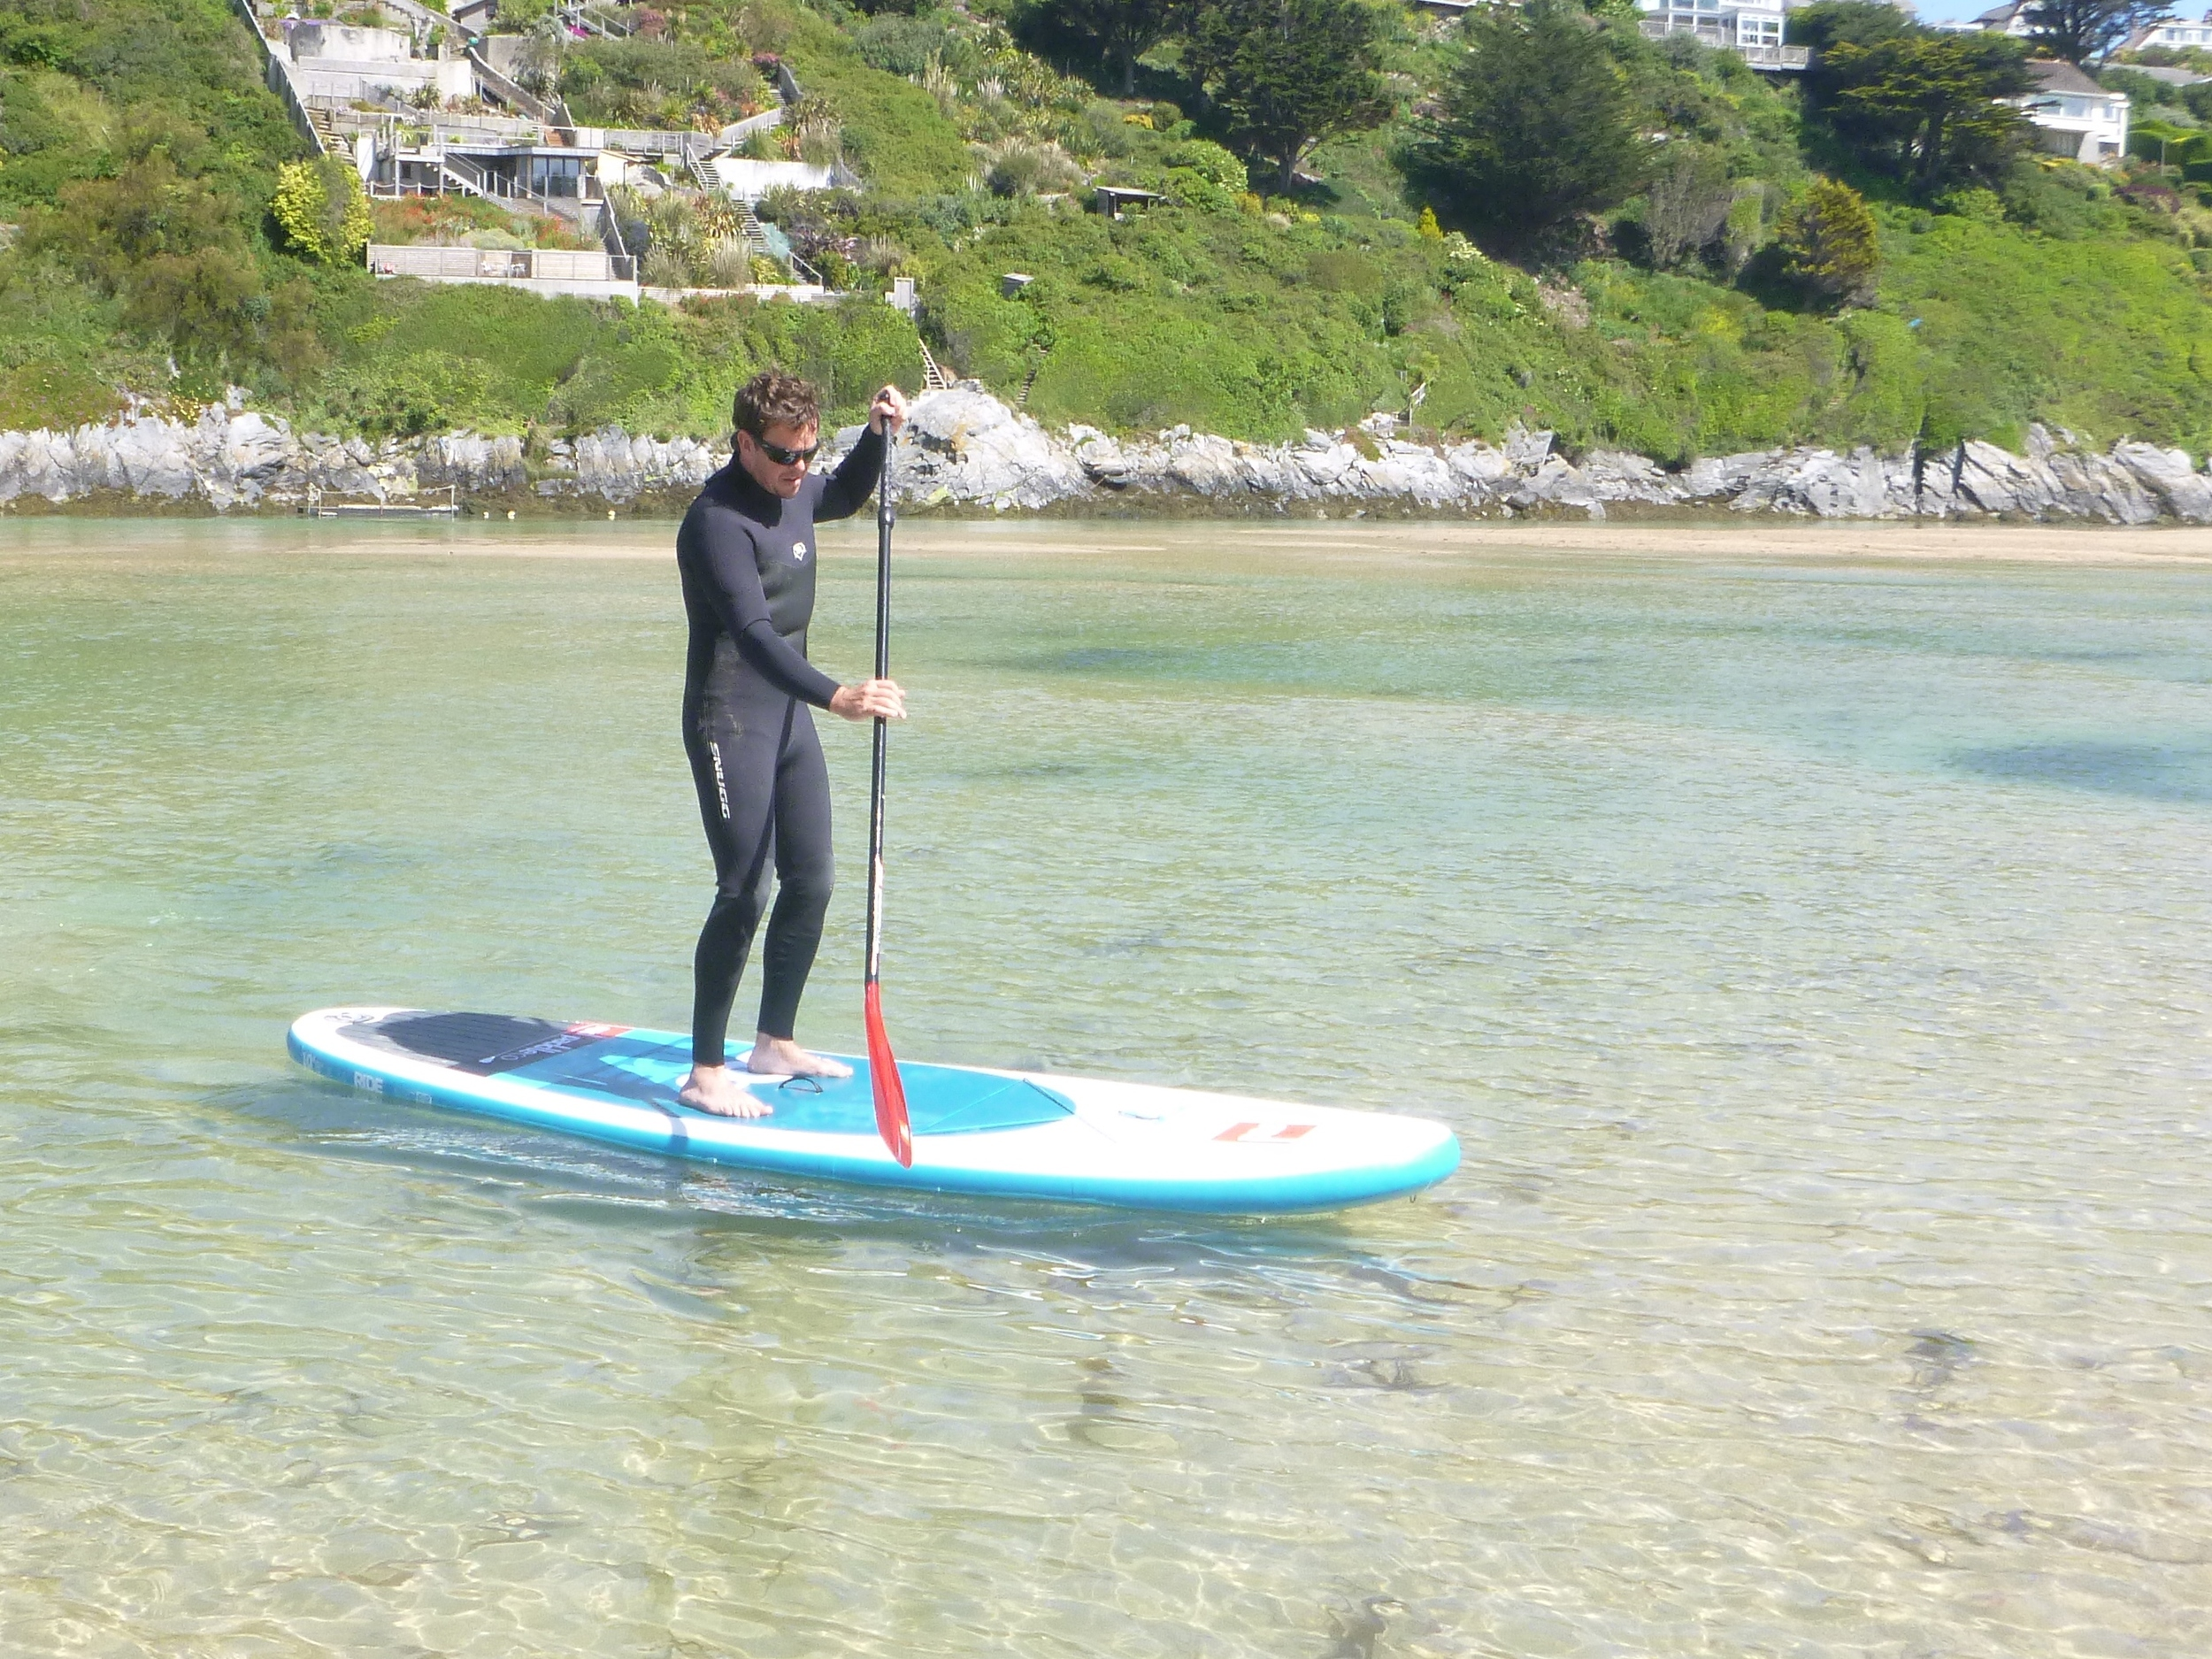 10 mins in and a natural, Crantock Cornwall - SUP in a Bag Hire / Rental